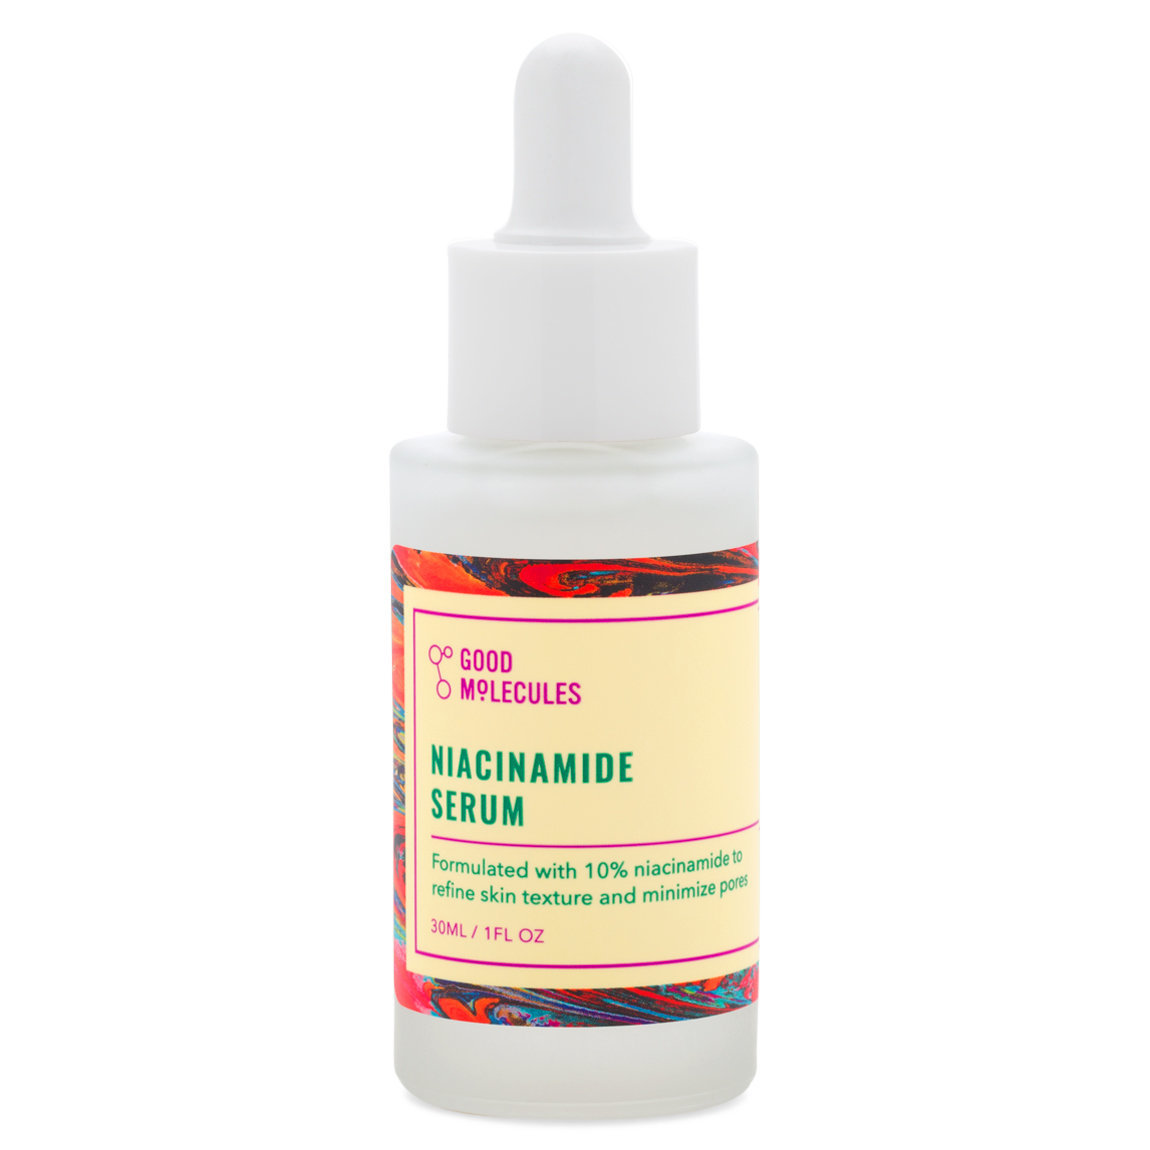 Good Molecules Niacinamide Serum product smear.